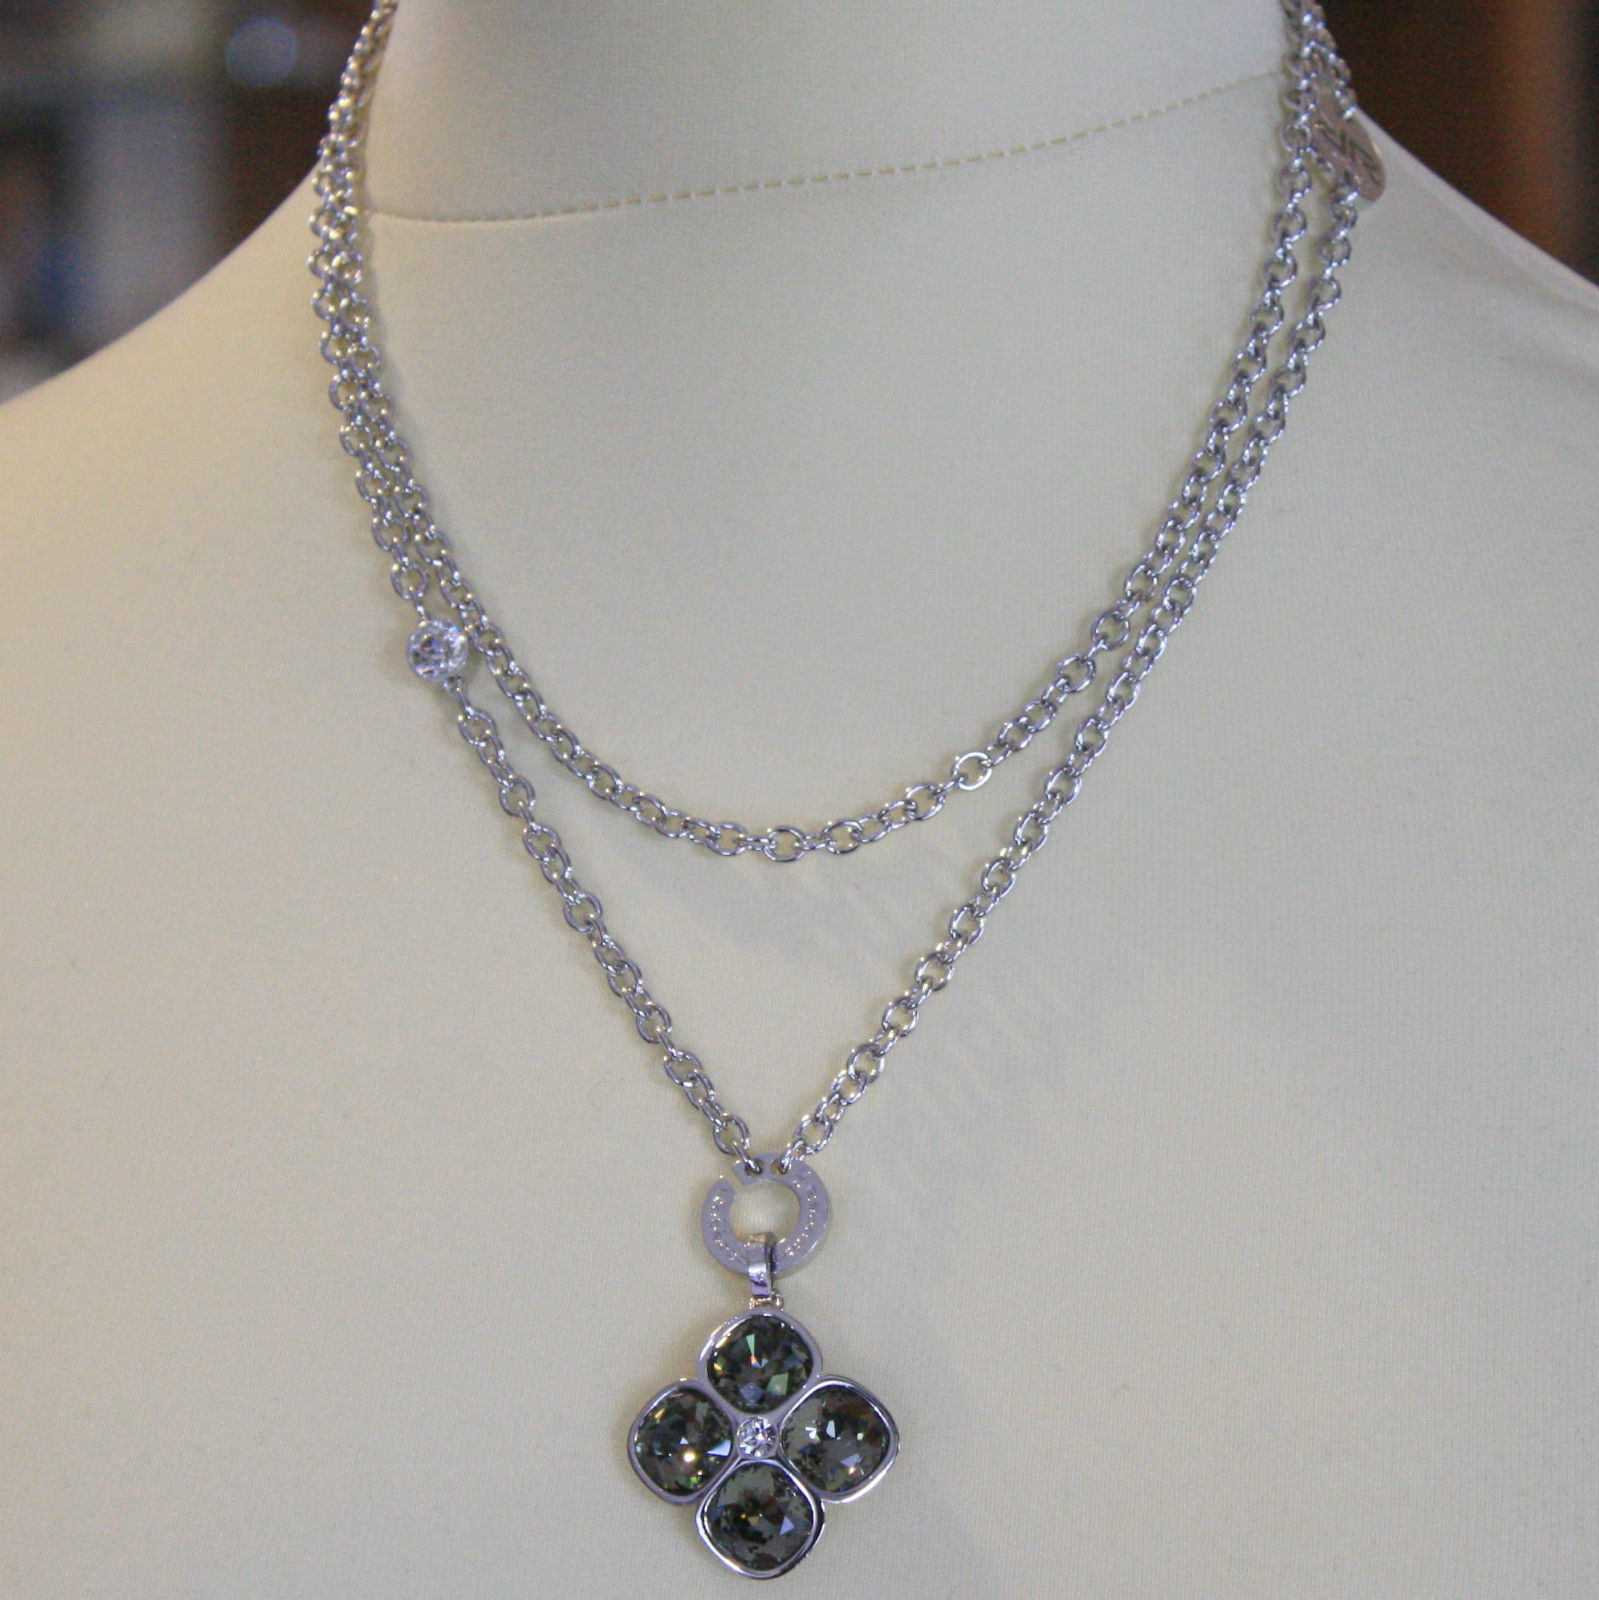 LONG RHODIUM BRONZE REBECCA NECKLACE BIG FLOWER GRAY CRYSTAL CT 15 MADE IN ITALY